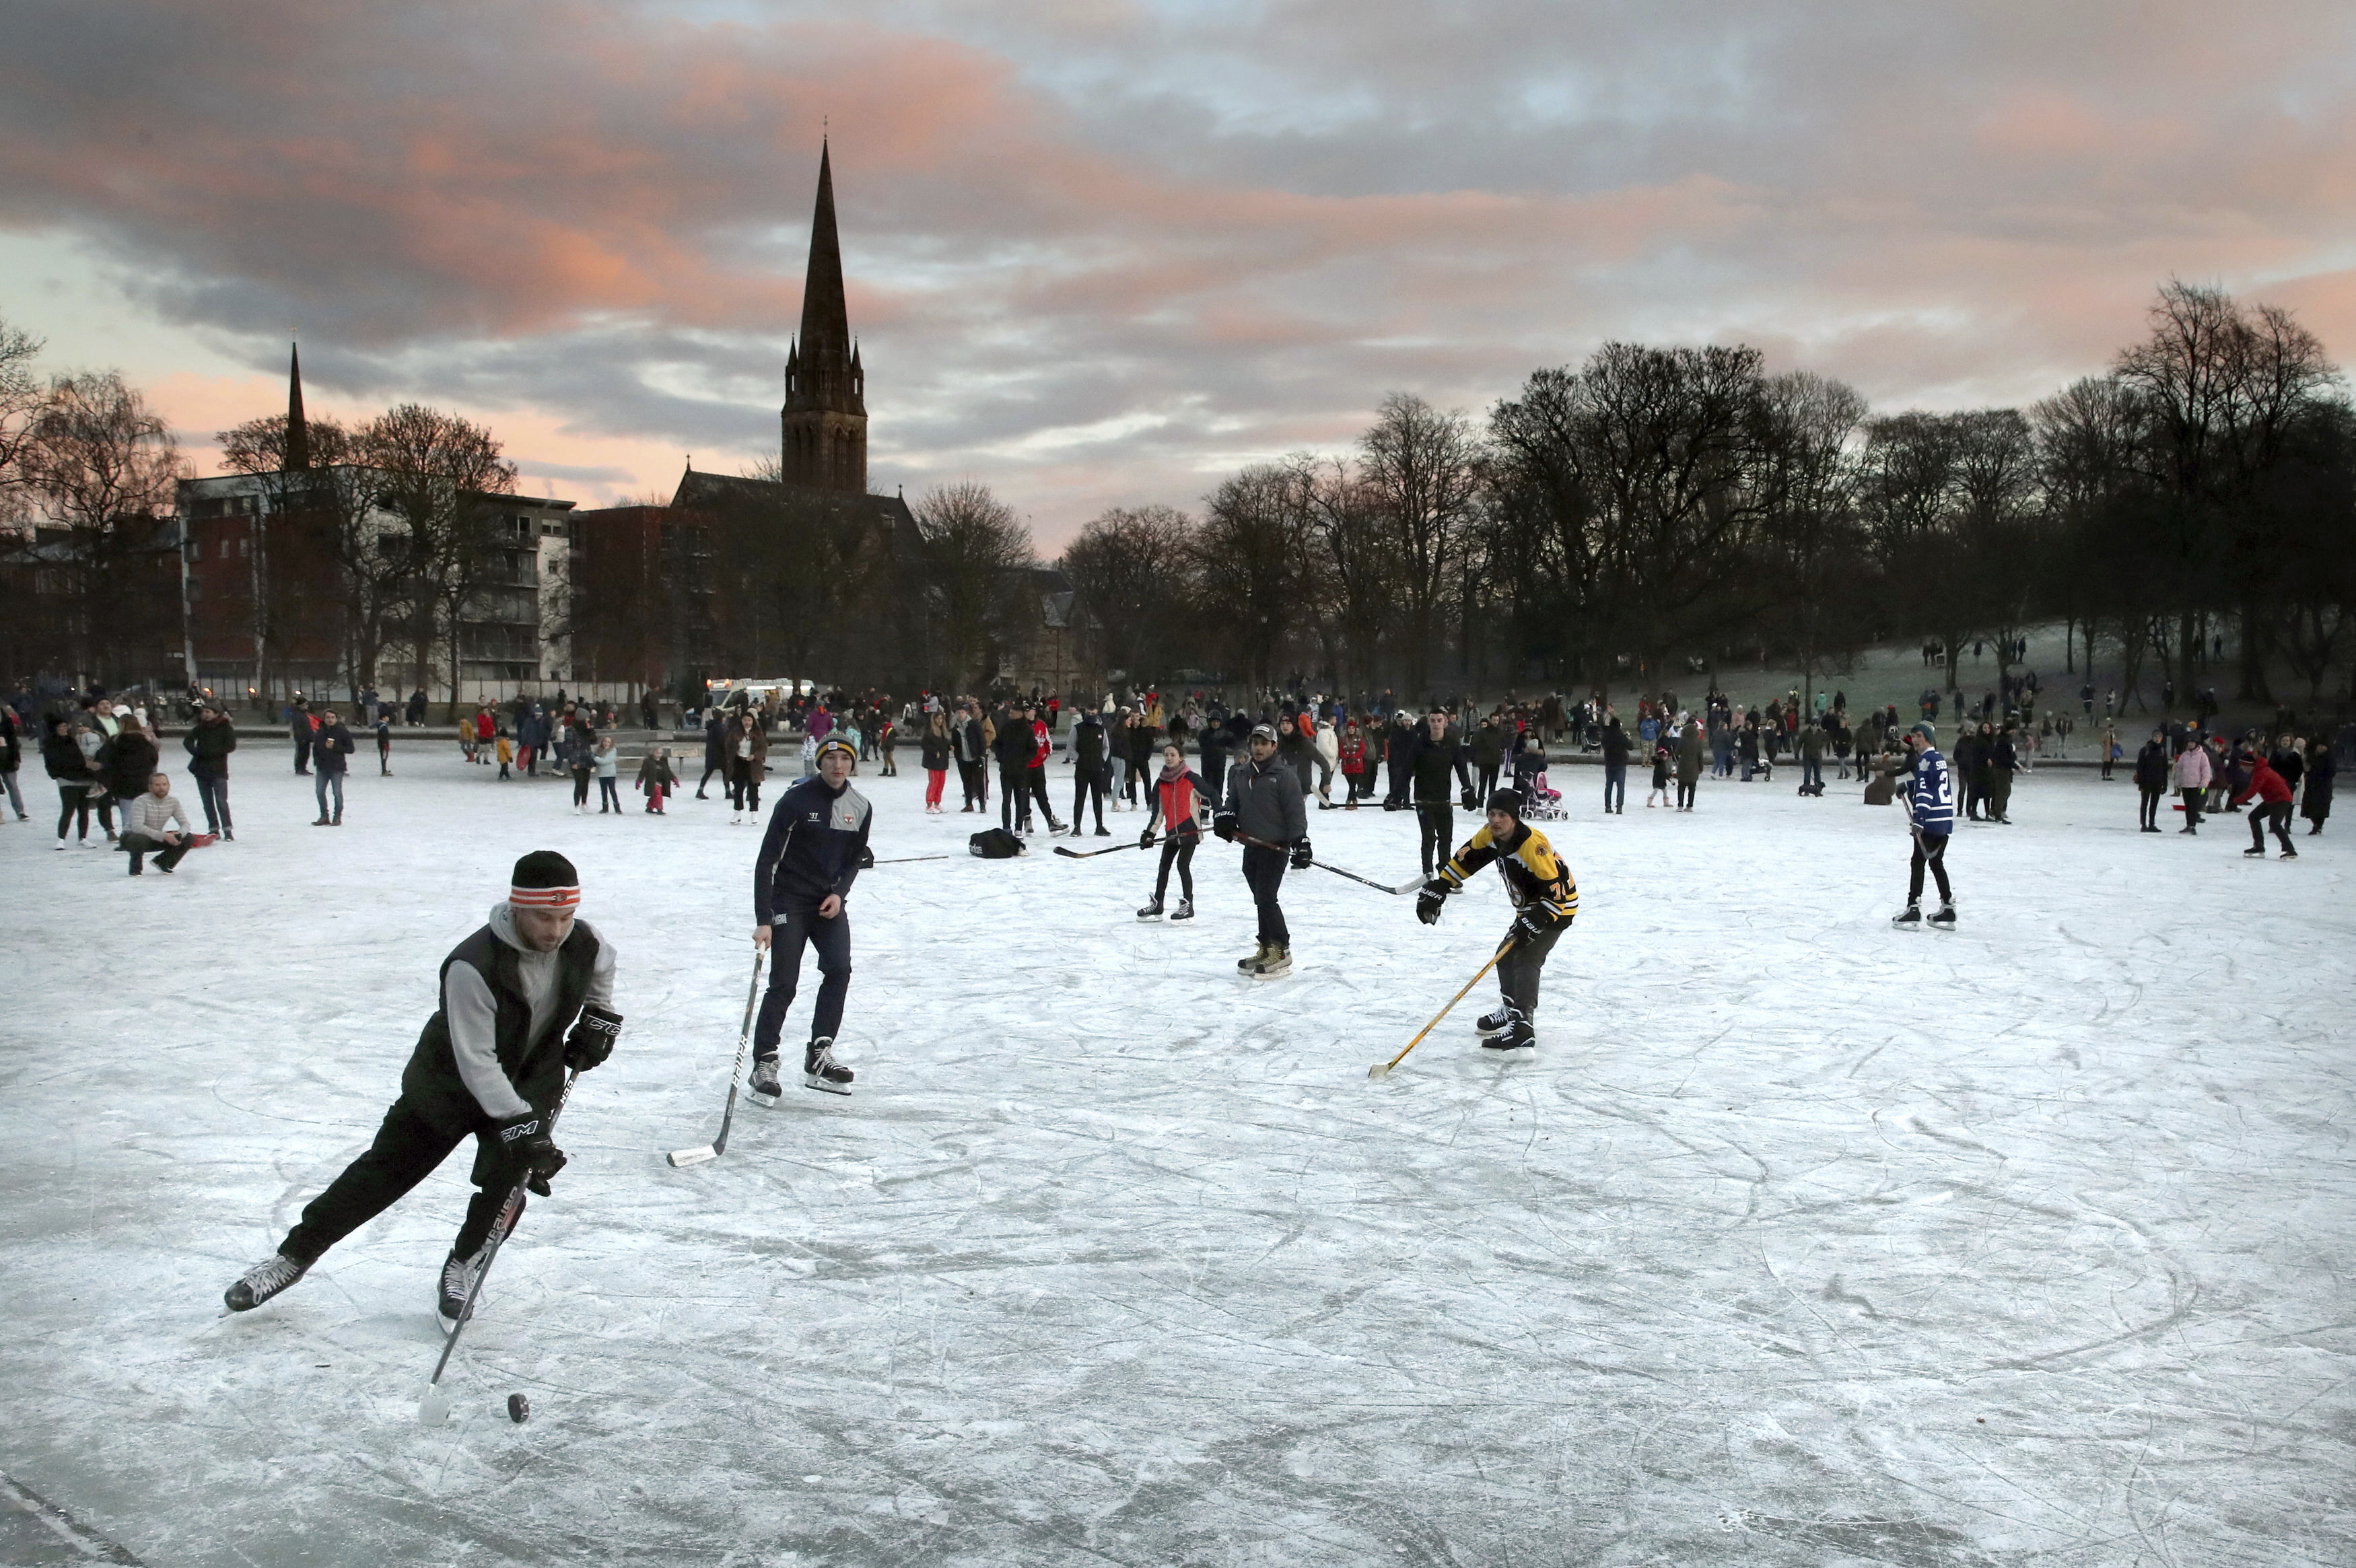 People play ice hockey as the sun sets on a frozen pond in Queen's Park, Glasgow, Scotland, Sunday Jan. 3, 2021. (Andrew Milligan/PA via AP)